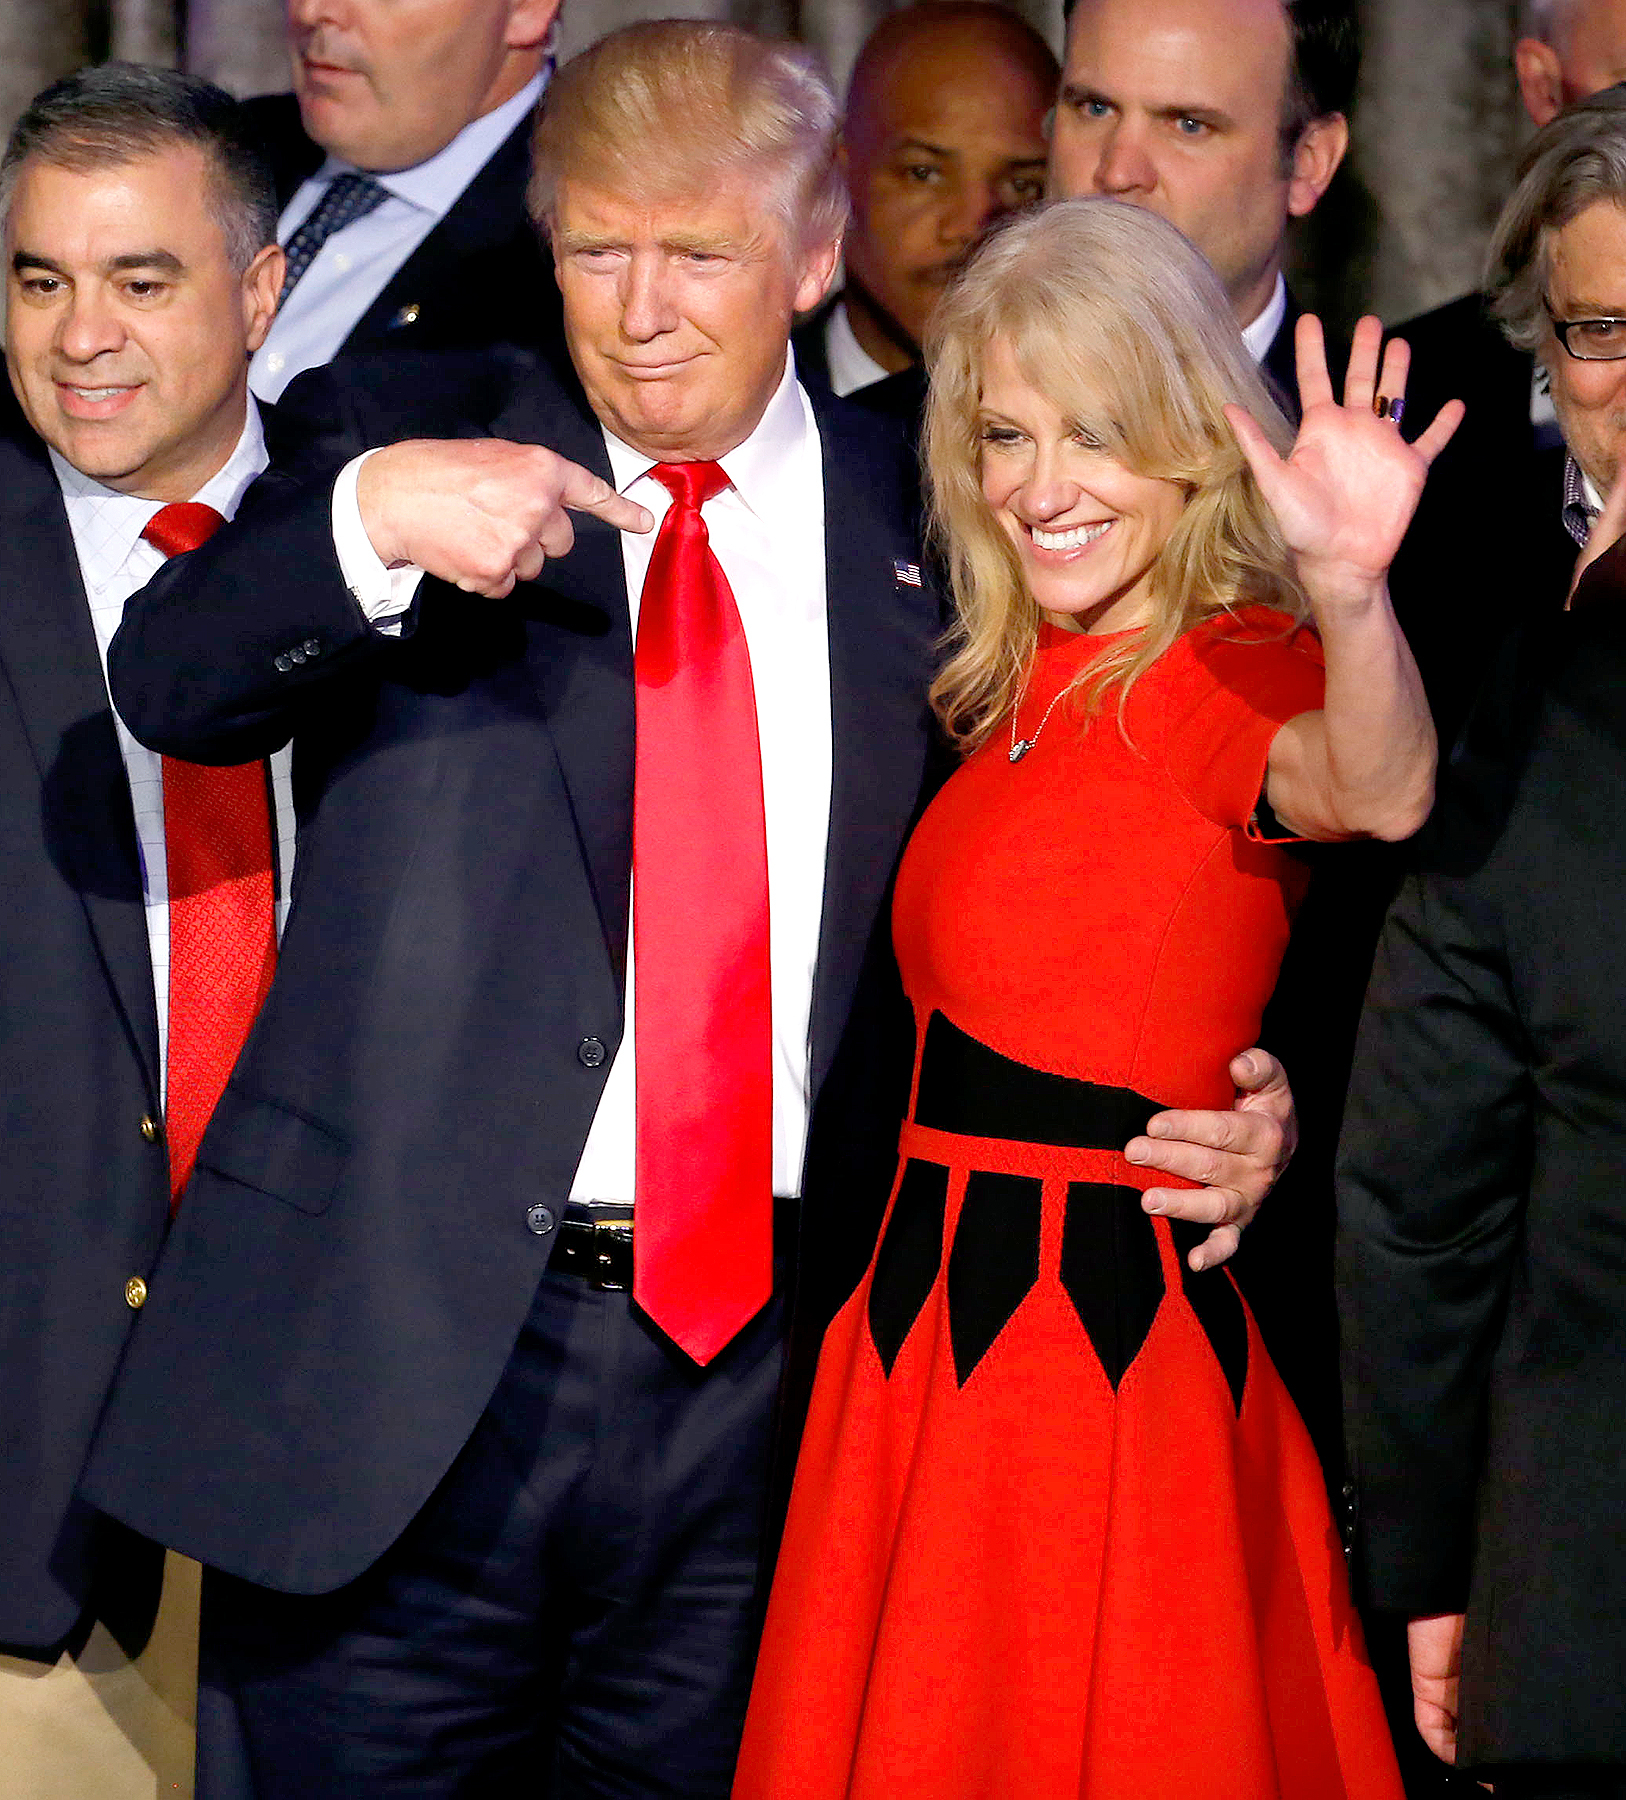 Kellyanne Conway Talks Trump, Cabinet Picks With Ties to Russia